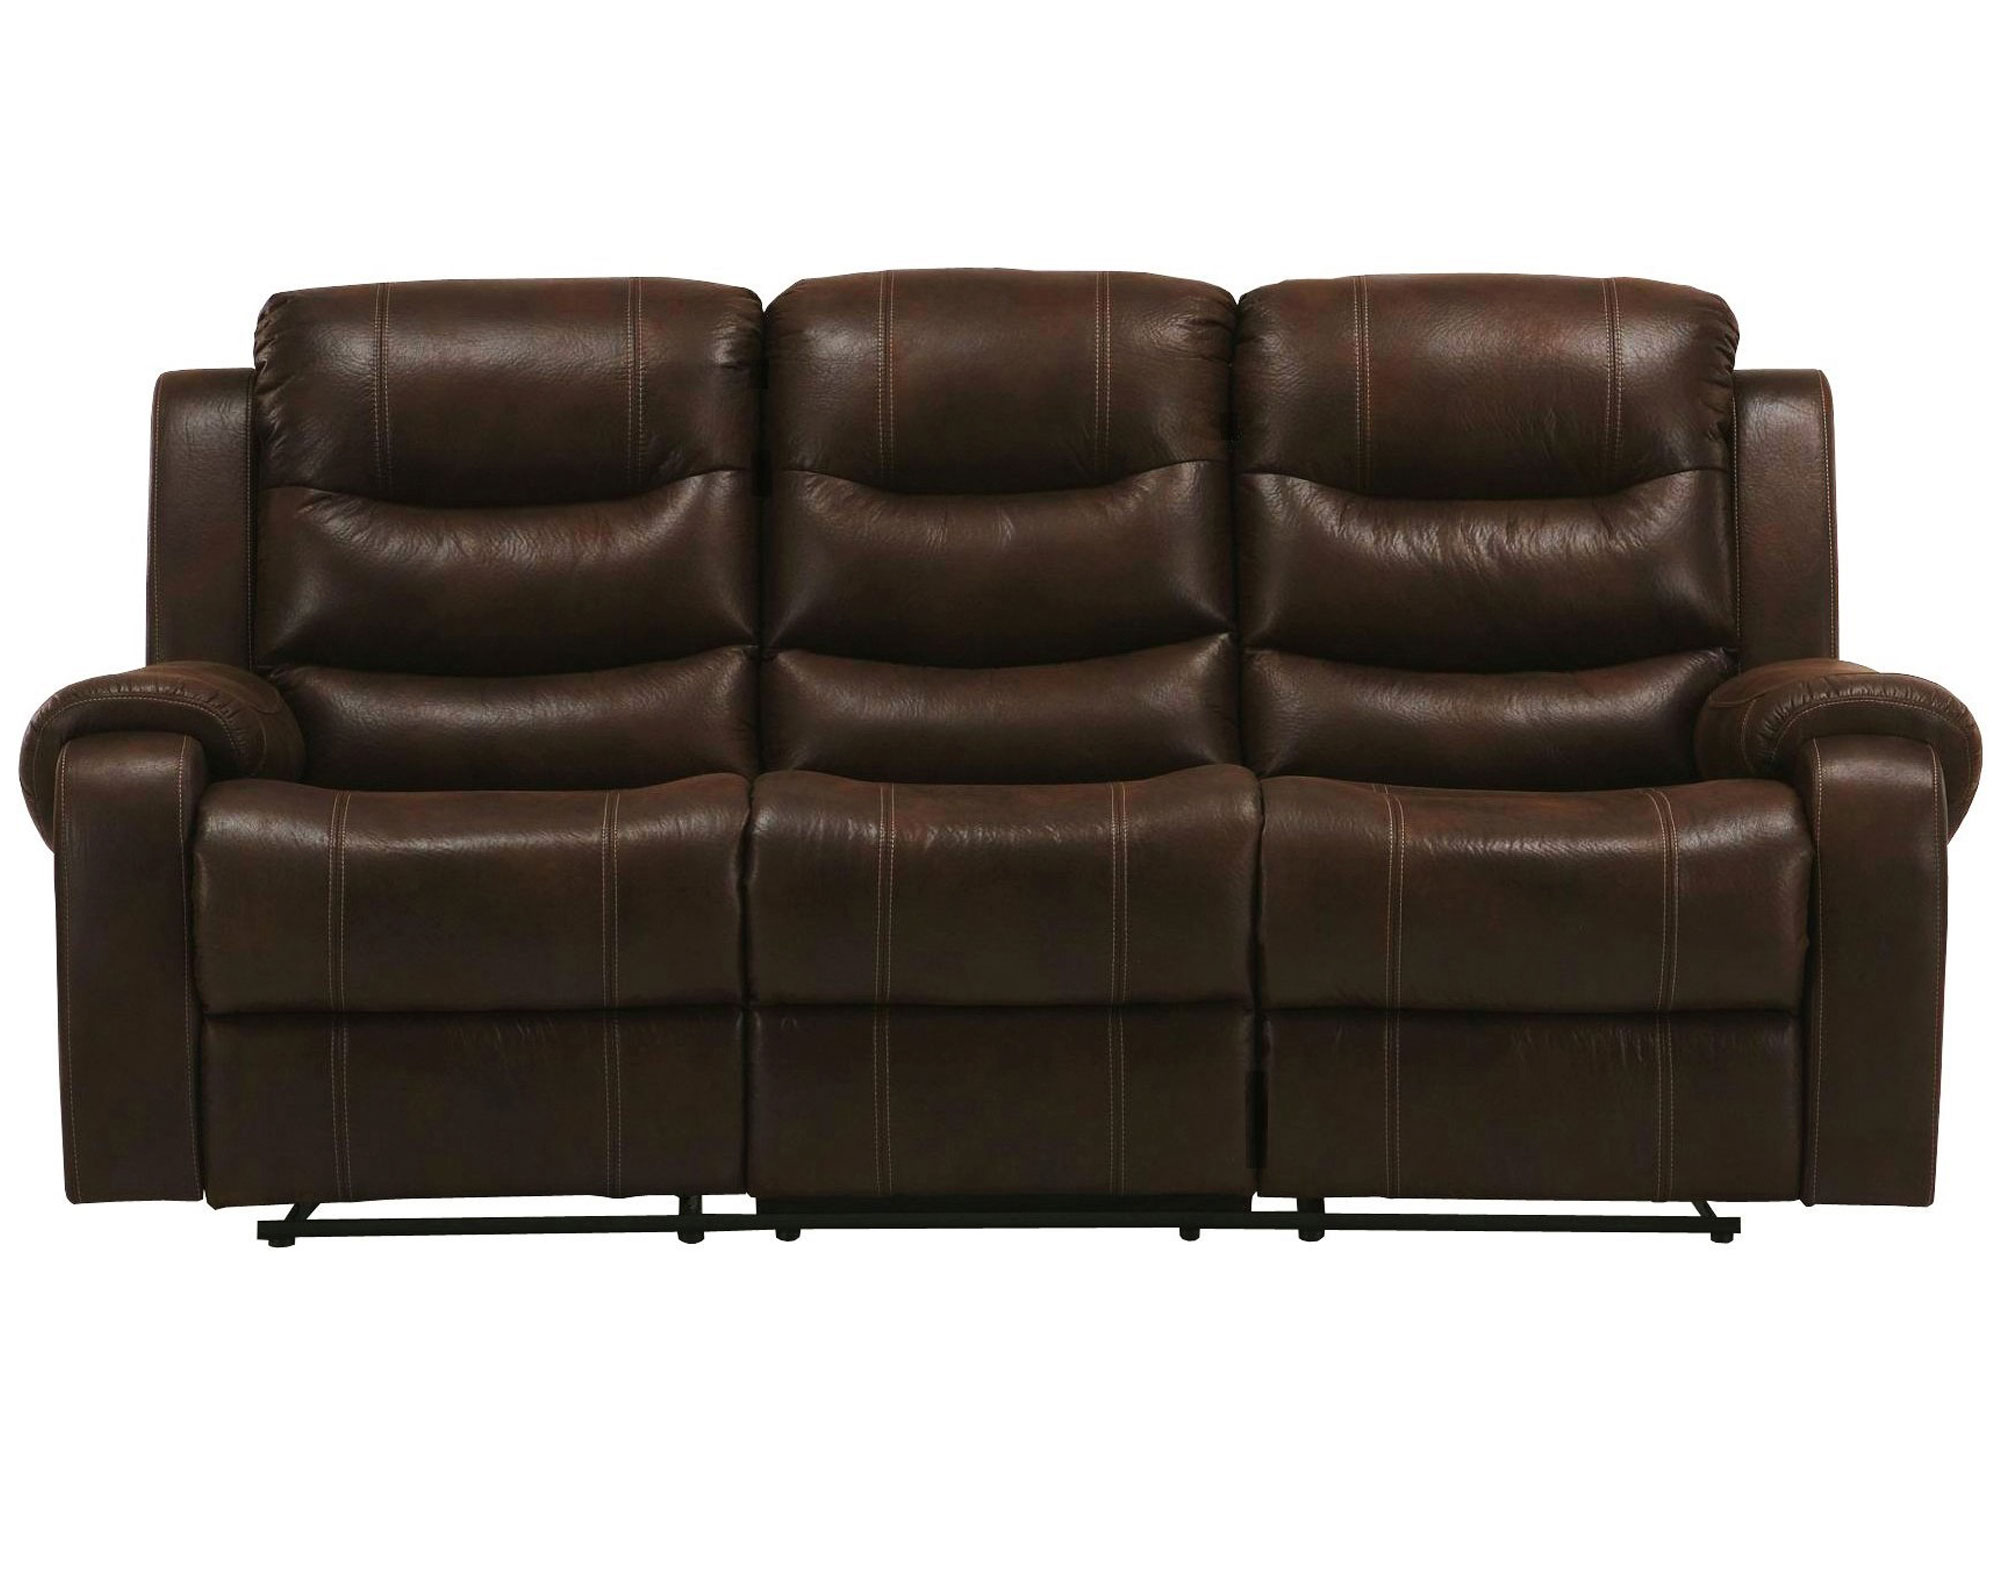 Fine Brahms Cowboy Double Reclining Sofa Sofas And Sectionals Camellatalisay Diy Chair Ideas Camellatalisaycom